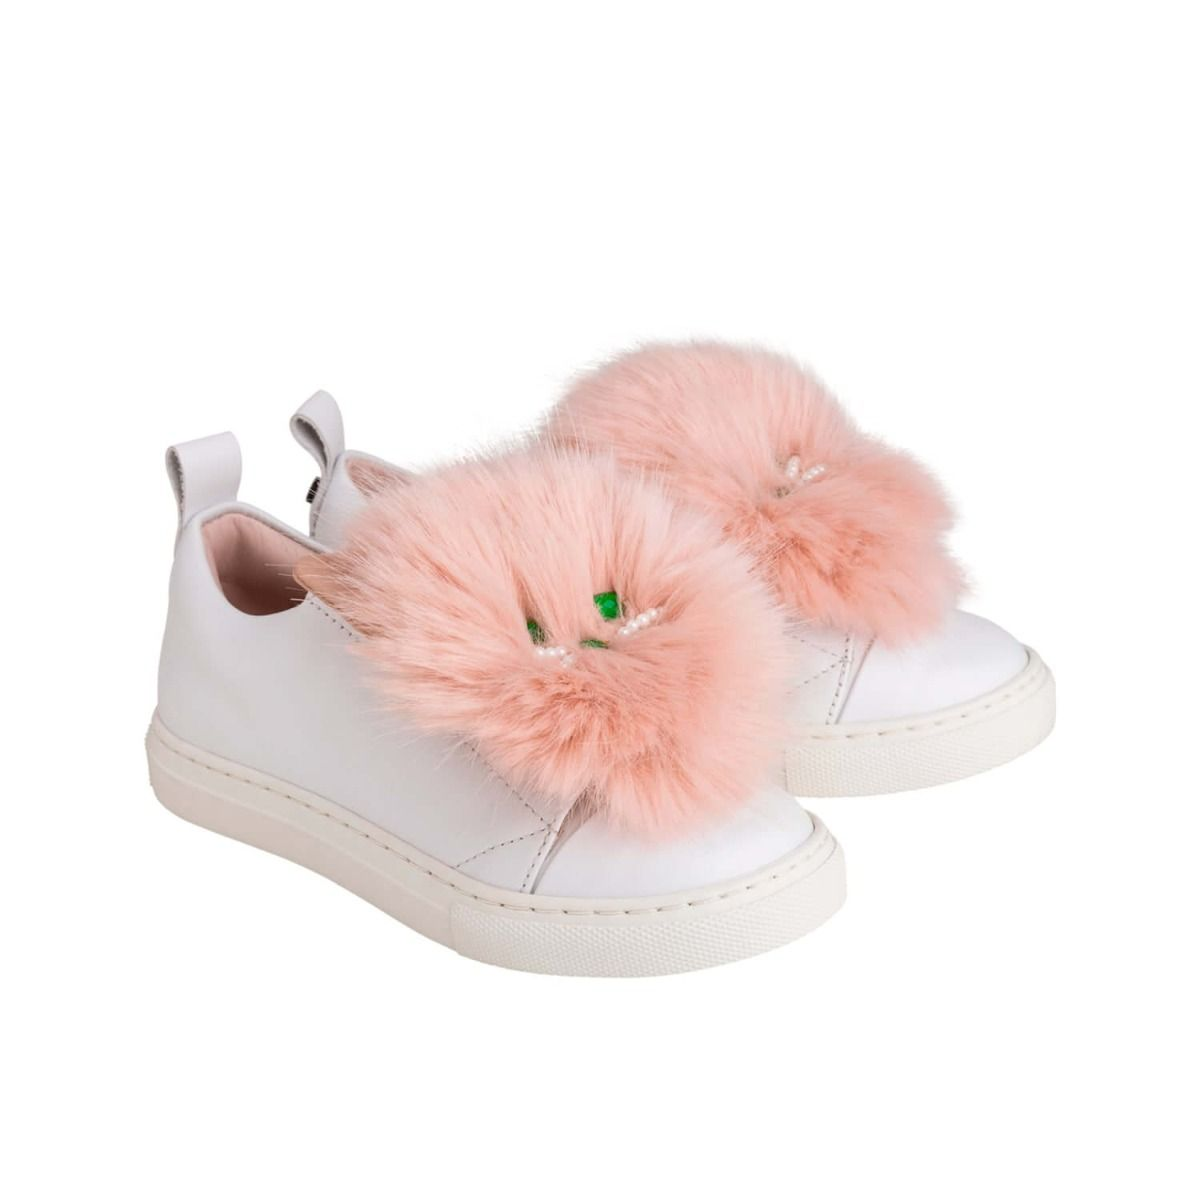 Baby and girl's sneakers in white leather with light pink fur applique and cat face applique.